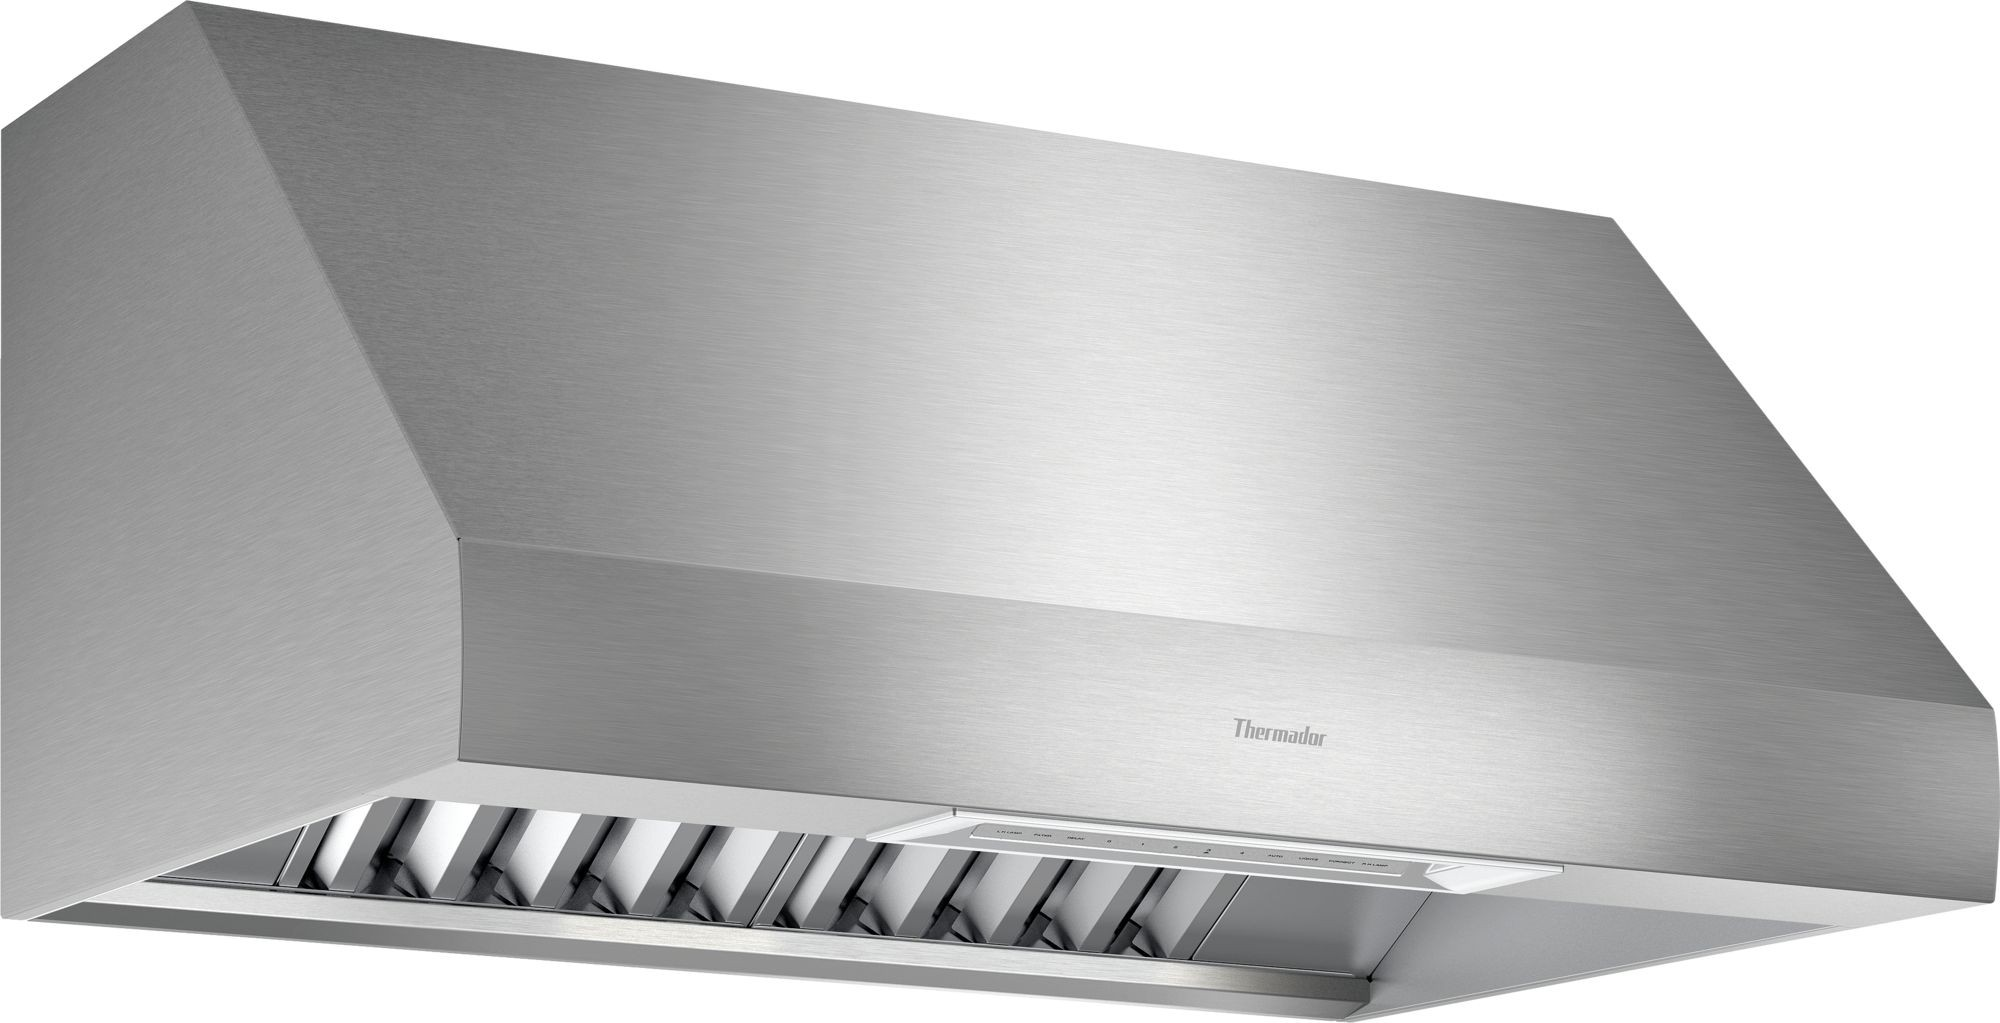 Thermador Ph36gws 36 Inch Wall Mount Hood With Led Light Infrared Heat Lamps Automatic Mode Check Filter Reminder Light And Delay Shut Off Thermador Wall Mount Range Hood Heat Lamps